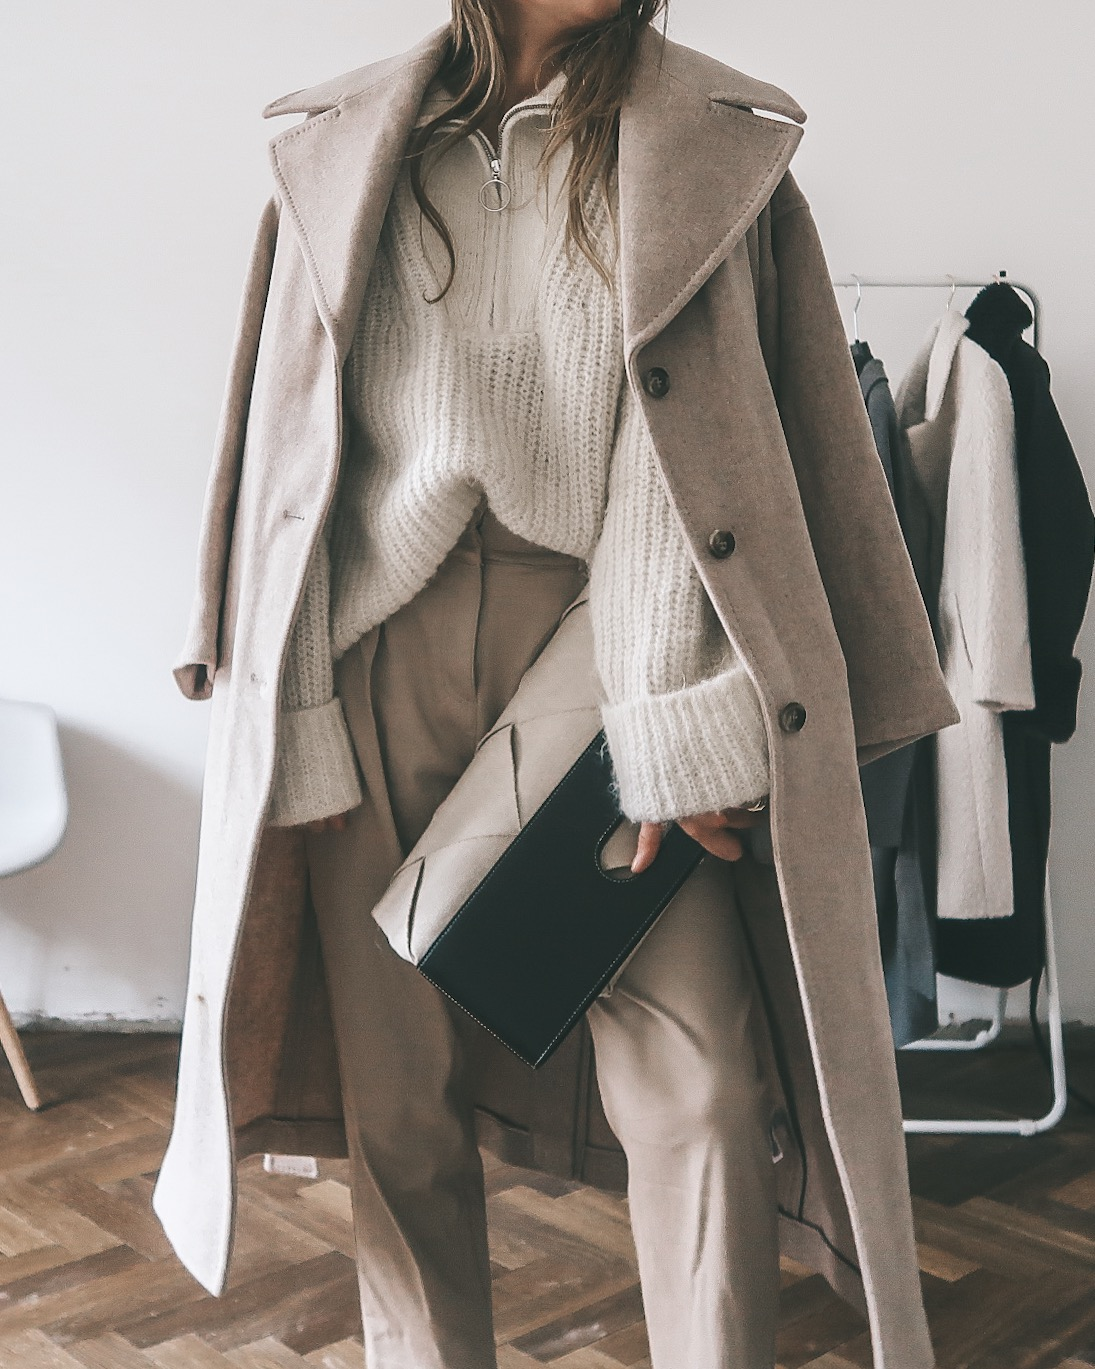 5 Neutral Winter Outfit Ideas